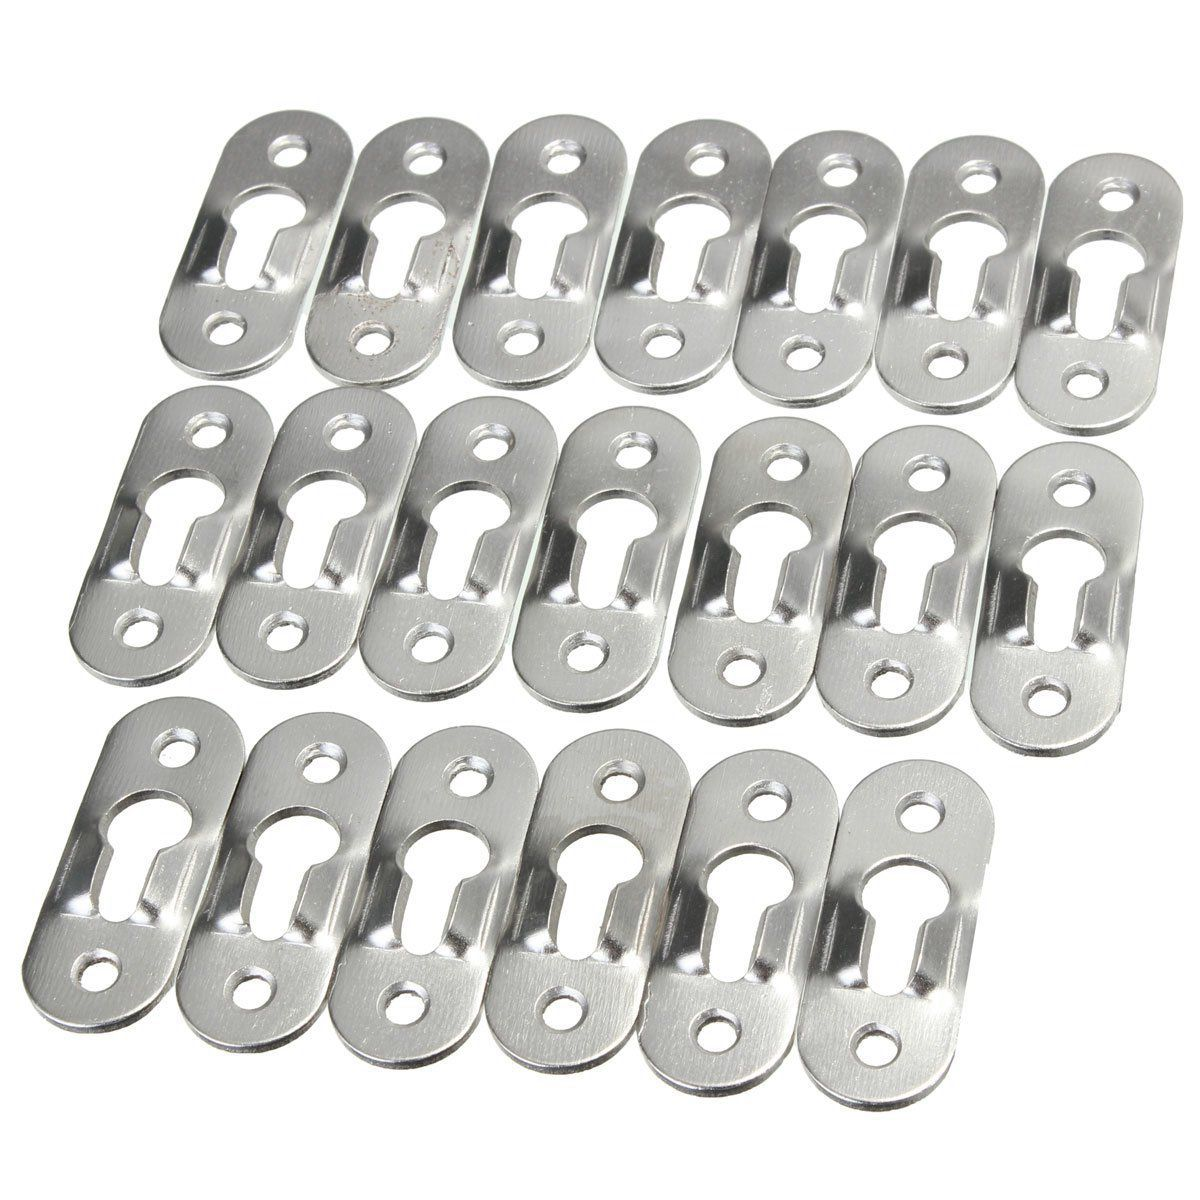 20 Pcs 44mm Metal Keyhole Hanger Fasteners Picture Hanger For Photo Painting   Picture Fasteners For Frame Furnniture Cabinet20 Pcs 44mm Metal Keyhole Hanger Fasteners Picture Hanger For Photo Painting   Picture Fasteners For Frame Furnniture Cabinet